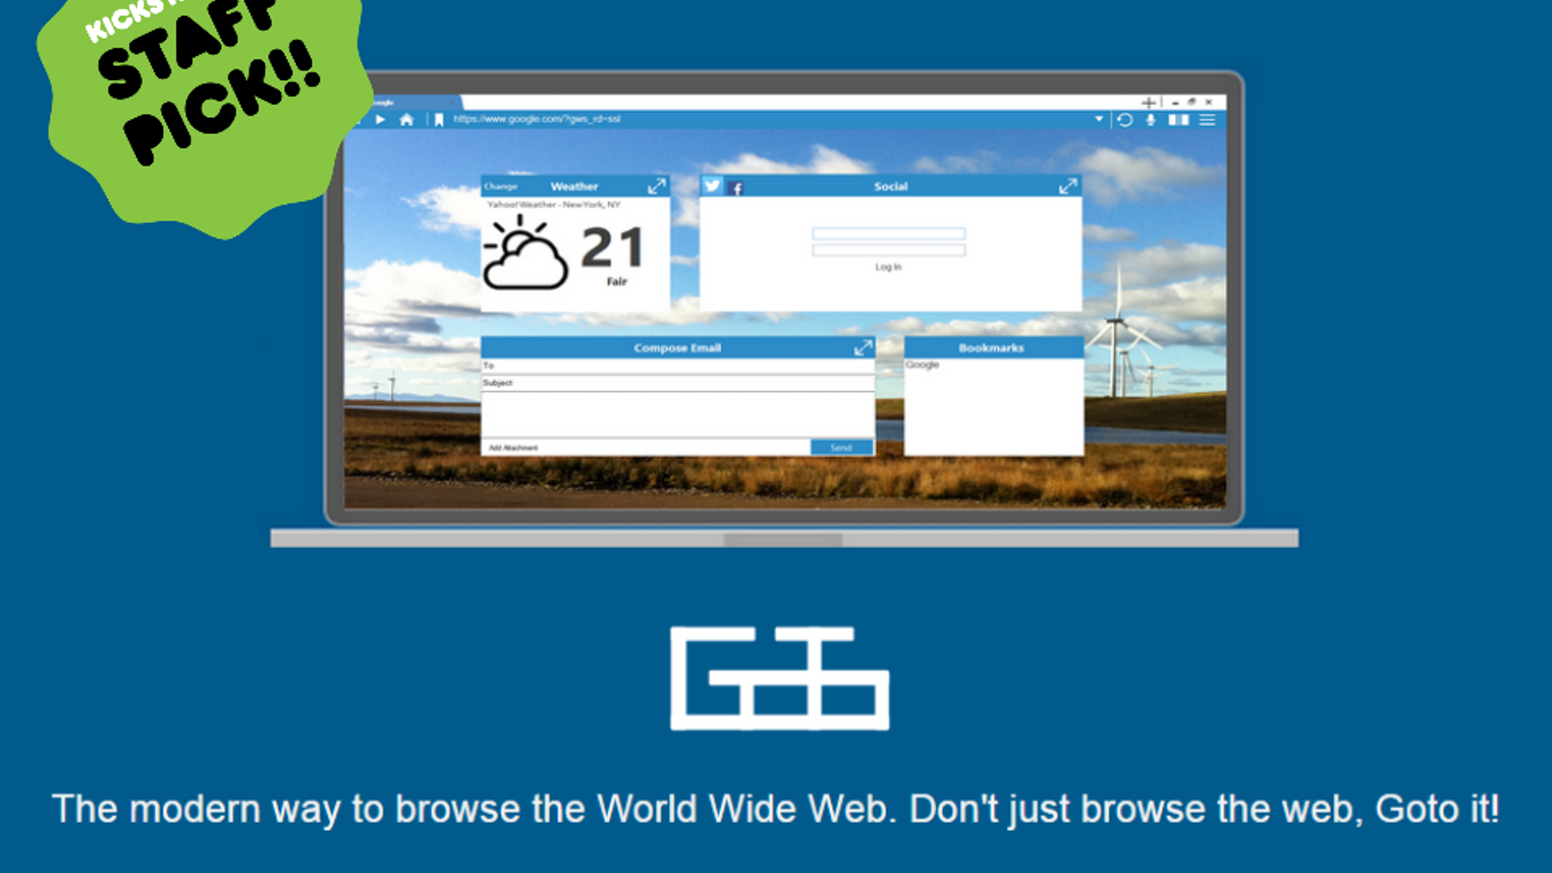 Goto Browser - The modern way to browse the World Wide Web by Gotek ...